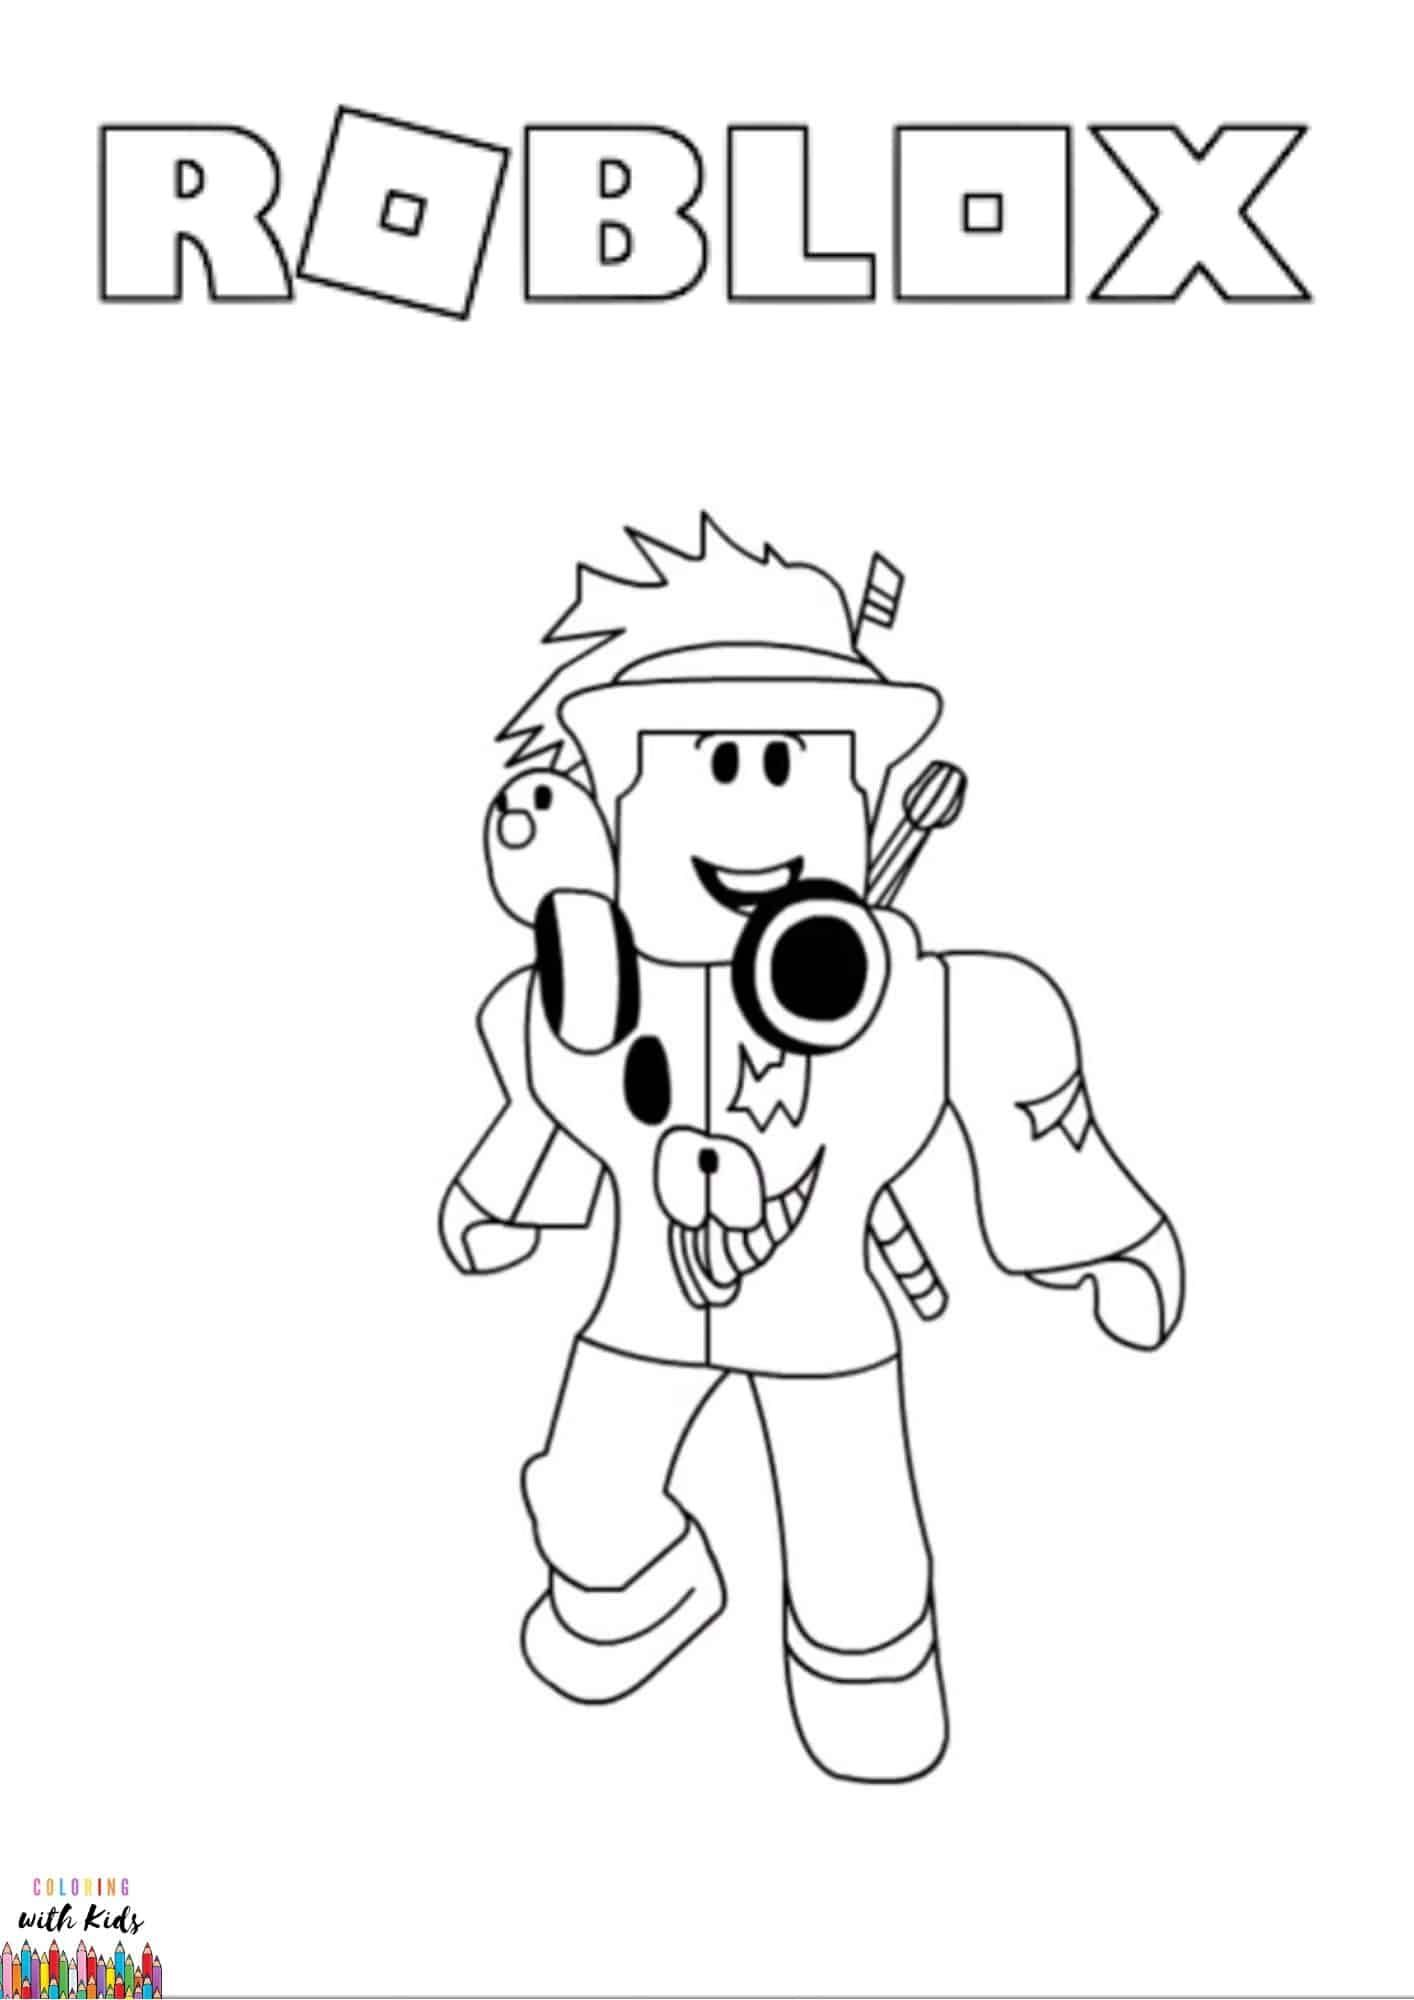 Roblox Avatar Coloring Page Image Credit Roblox Avatar By Yadia Chenia Permission For Pe Pokemon Coloring Pages Coloring Pages Cartoon Coloring Pages